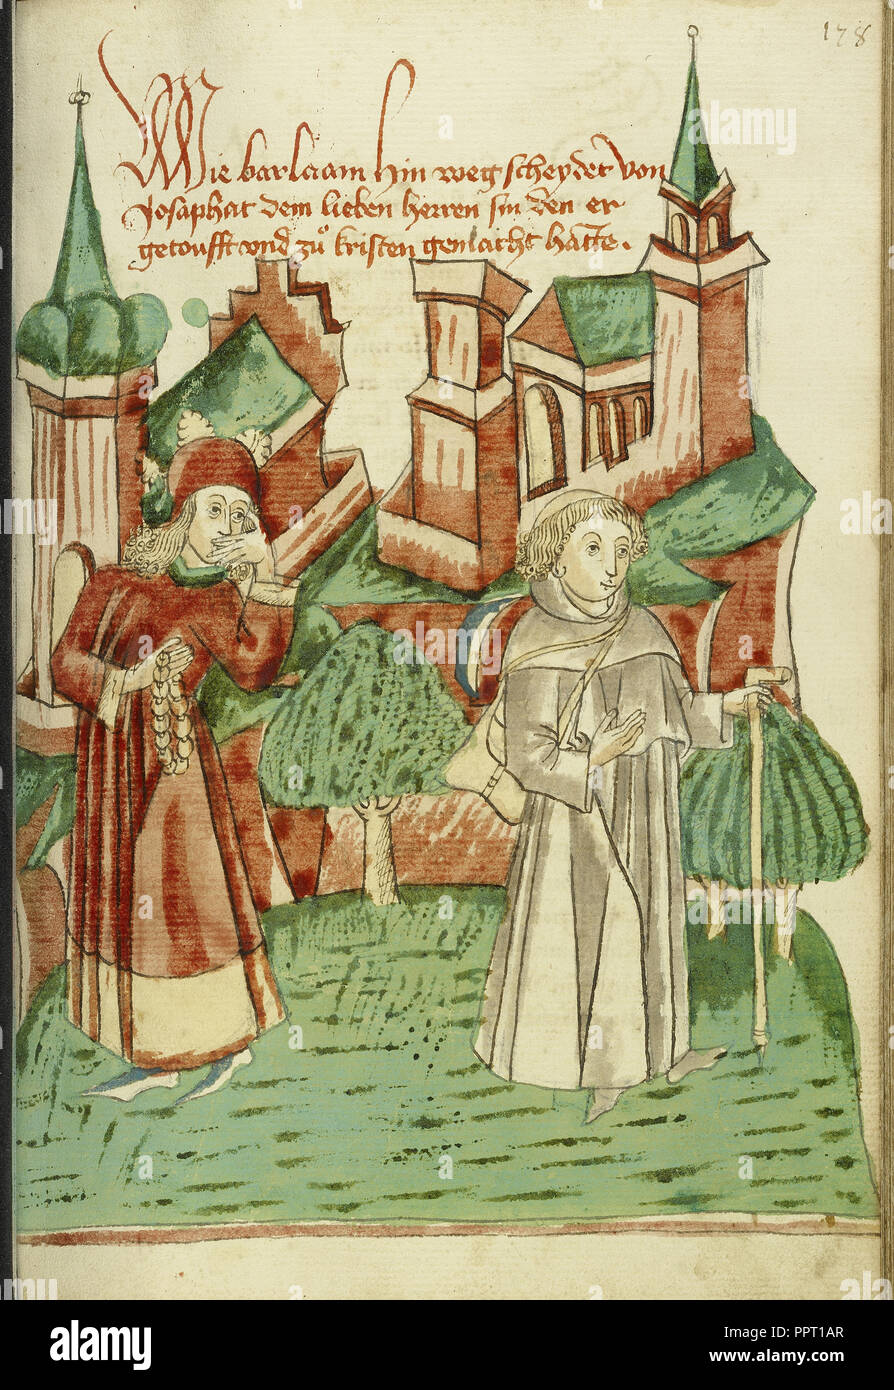 Barlaam Departs as Josaphat Watches him Sadly; Follower of Hans Schilling, German, active 1459 - 1467) - Stock Image